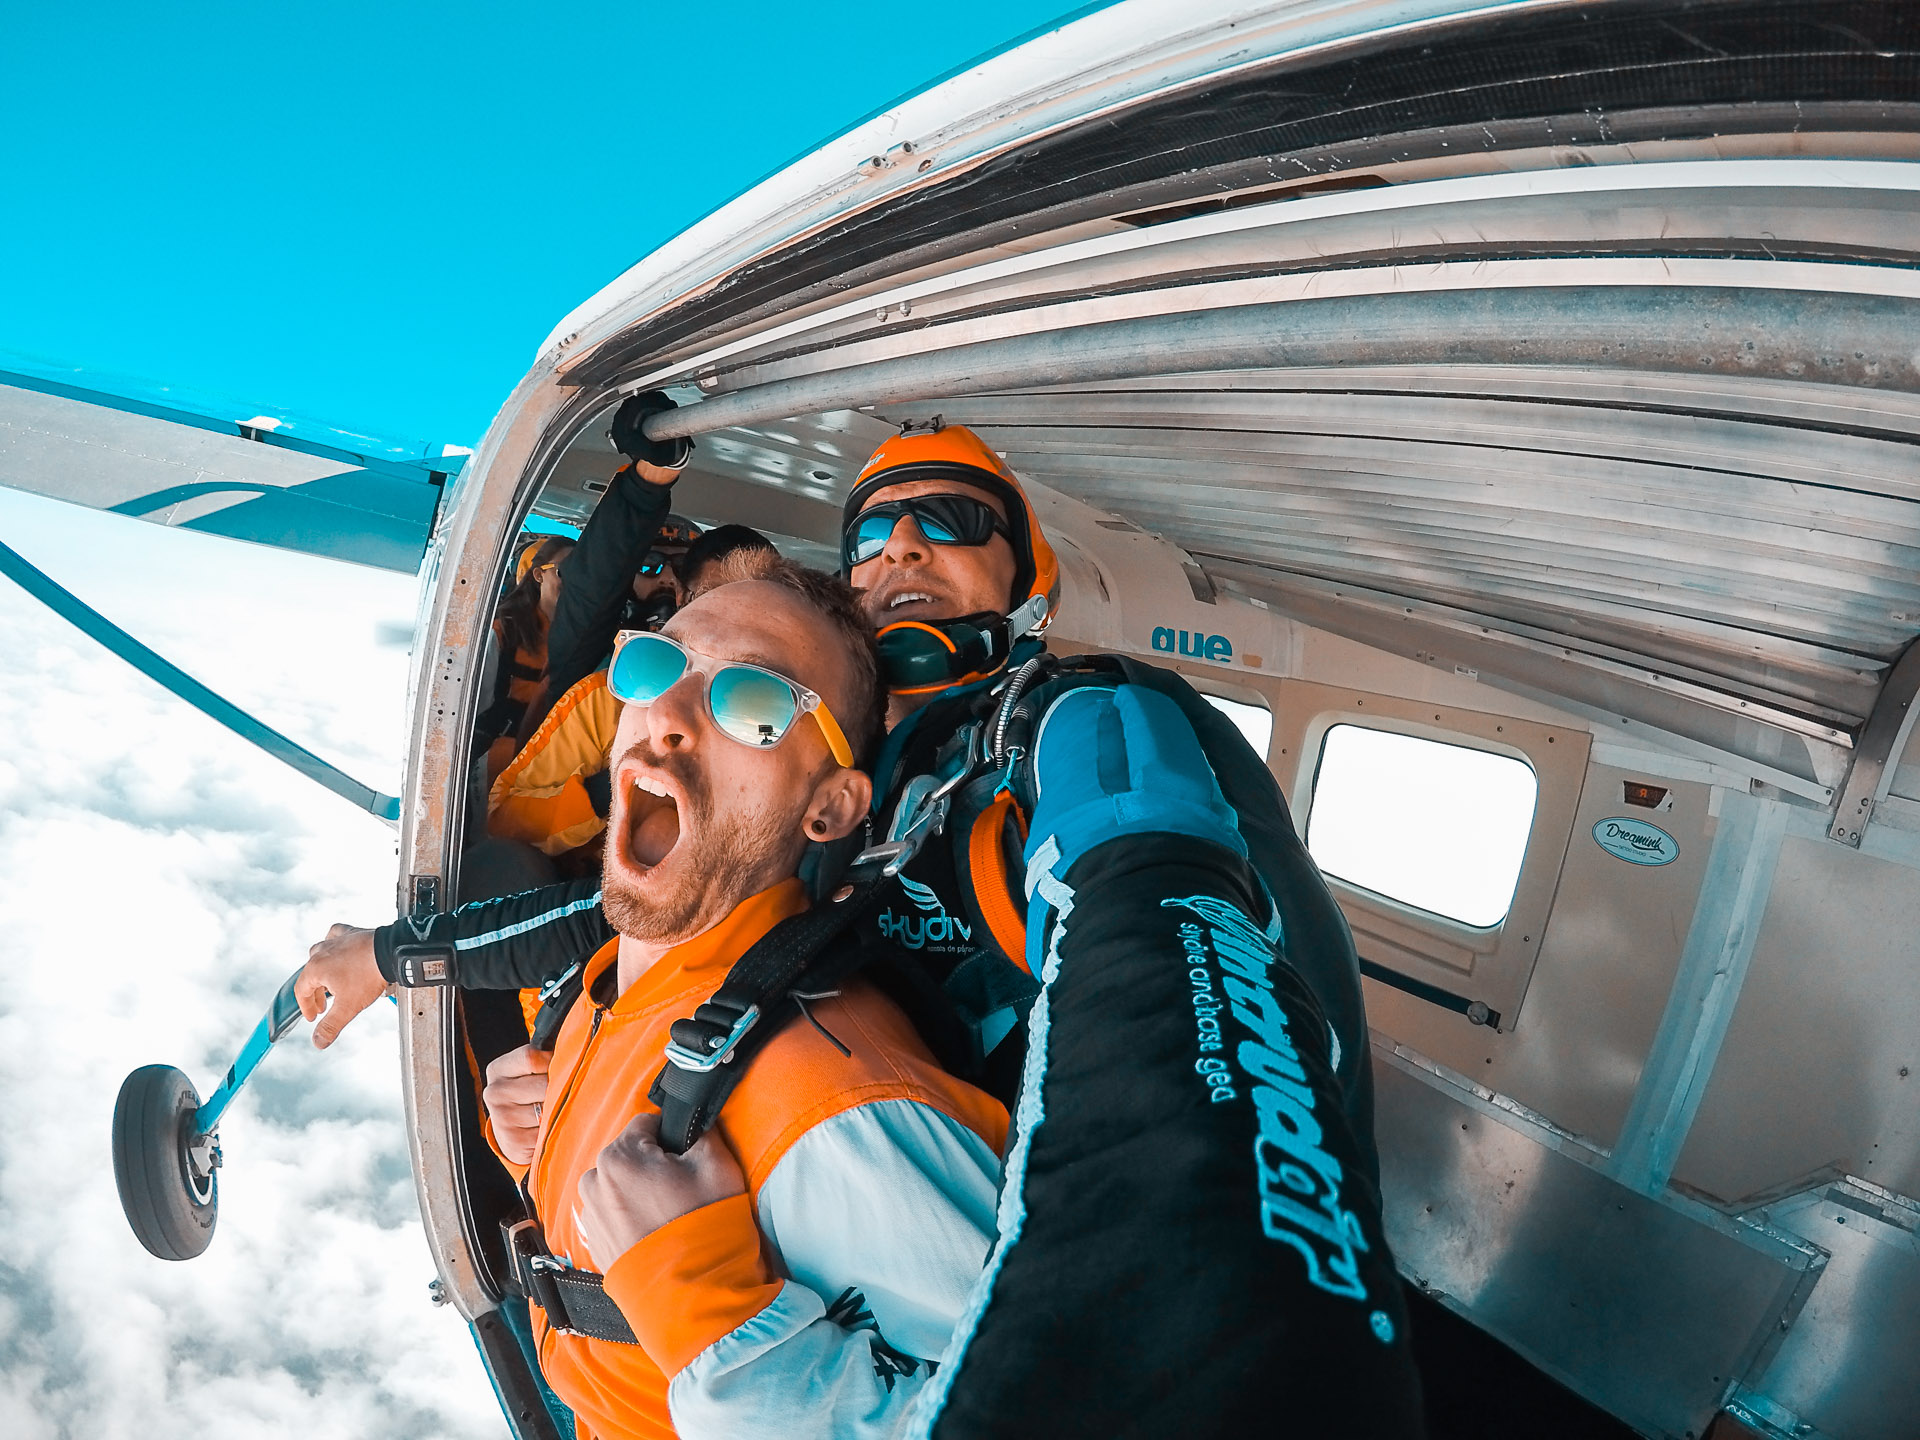 Man jumping out of plane Skydiving_Courage Adventures